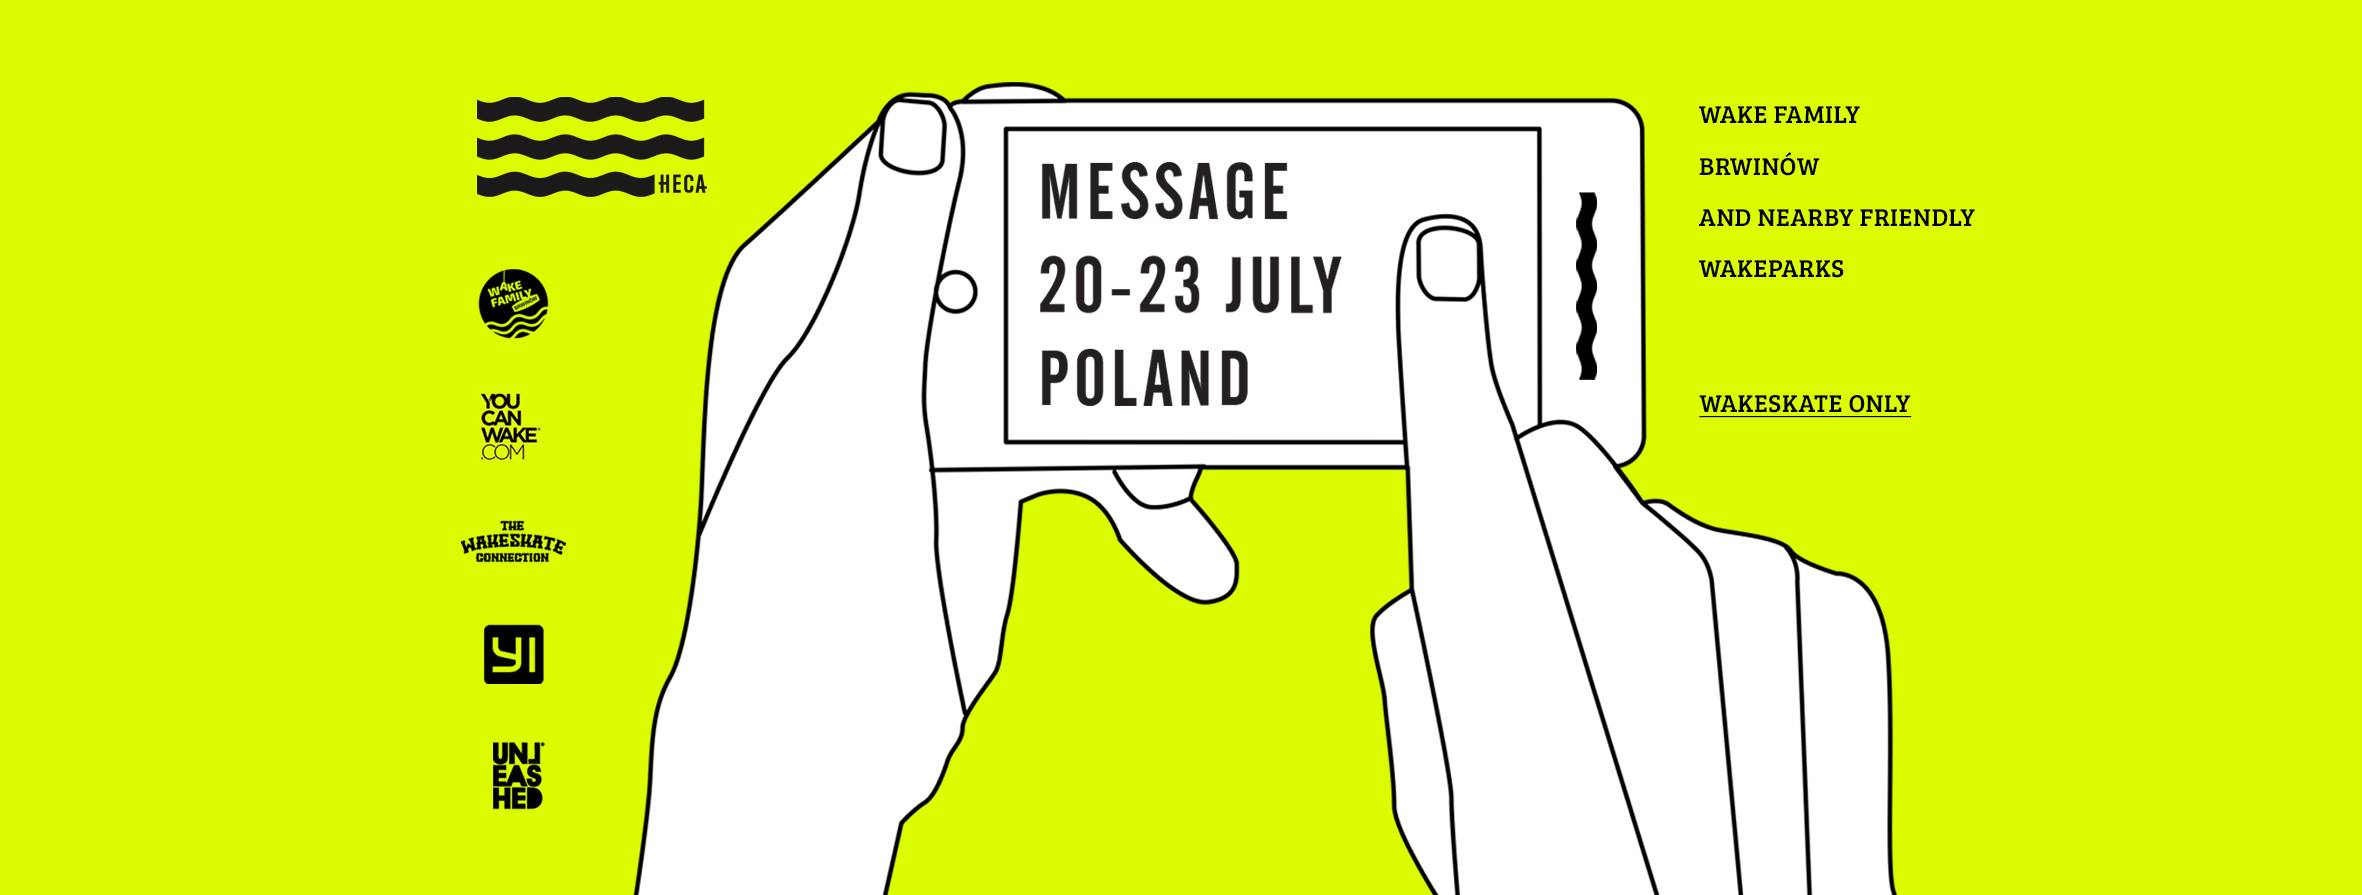 Message: 20-23 July 2018 Poland Wakeskate Session